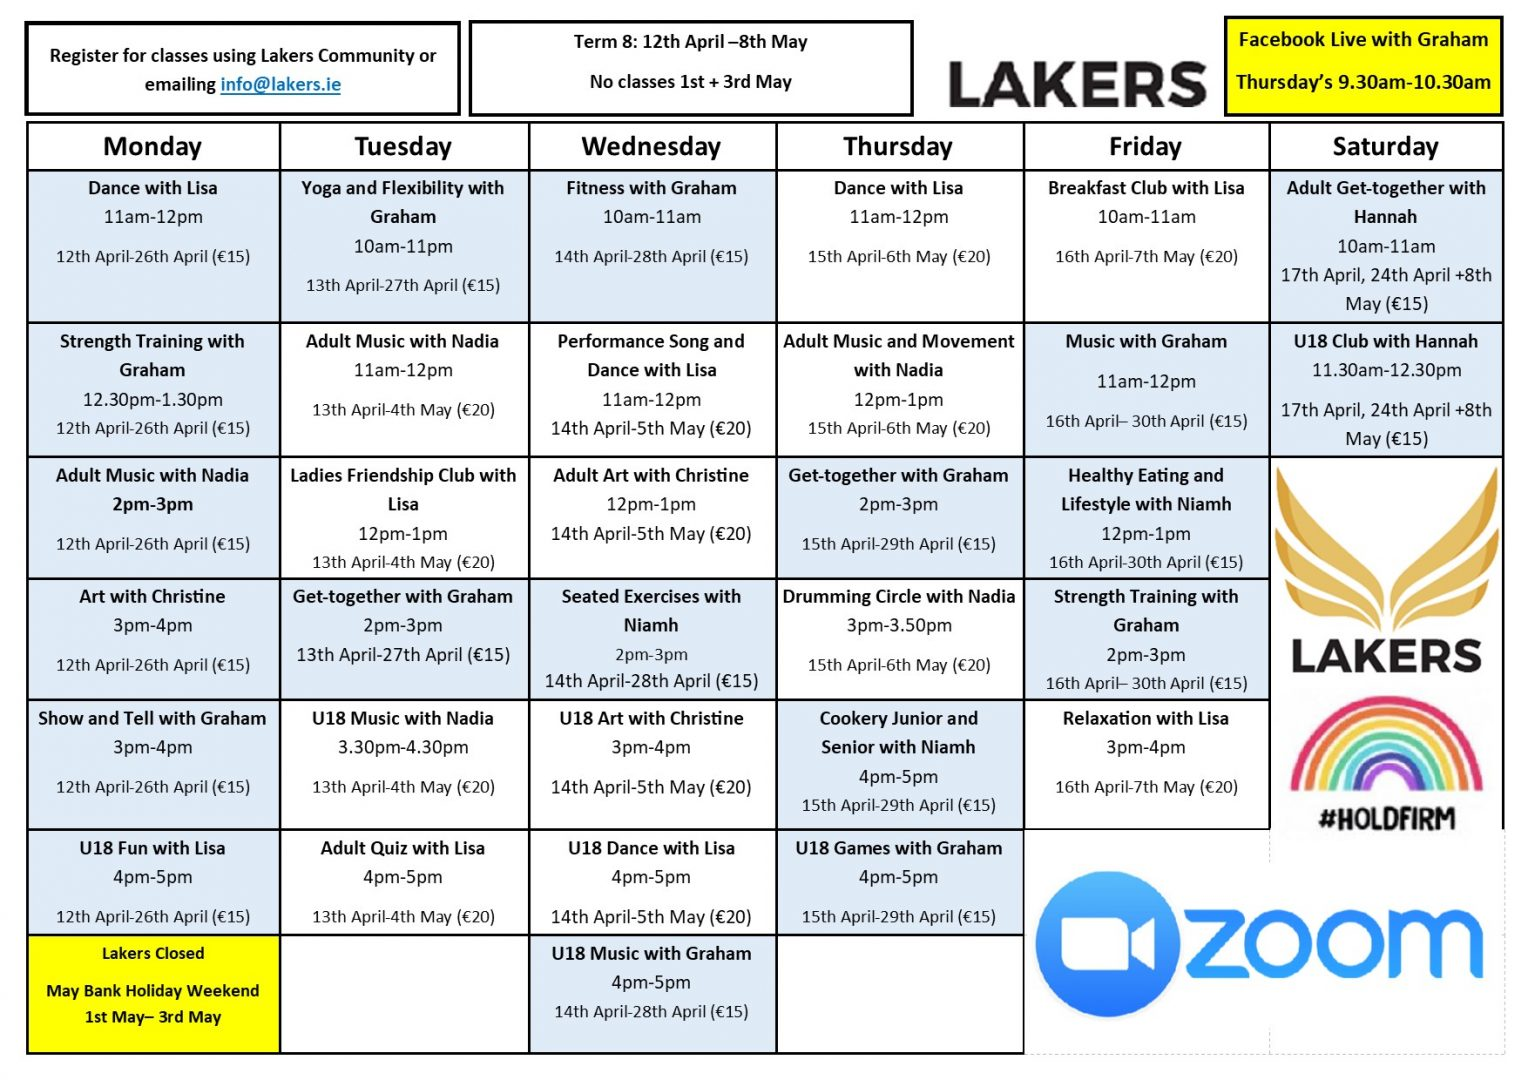 Timetable - April 12th - 8th May